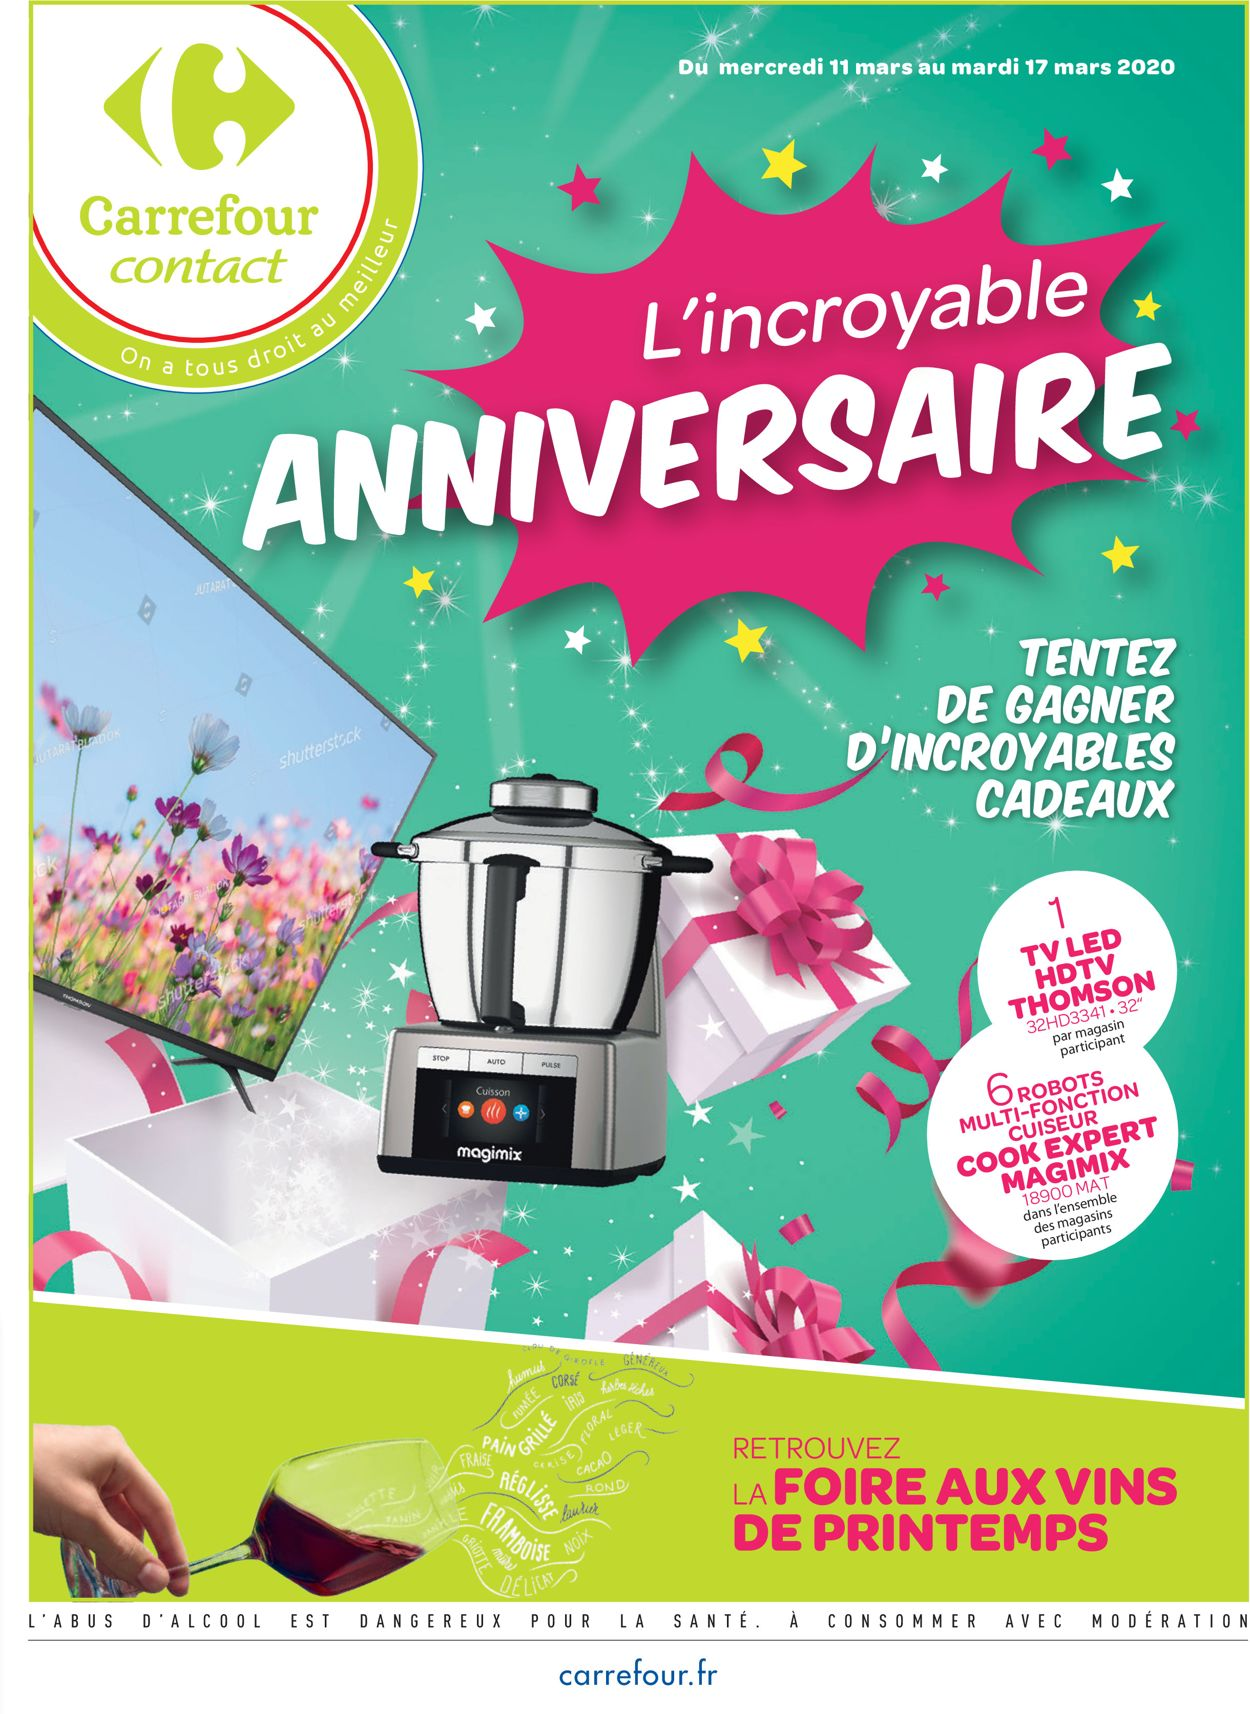 Carrefour Catalogue - 11.03-17.03.2020